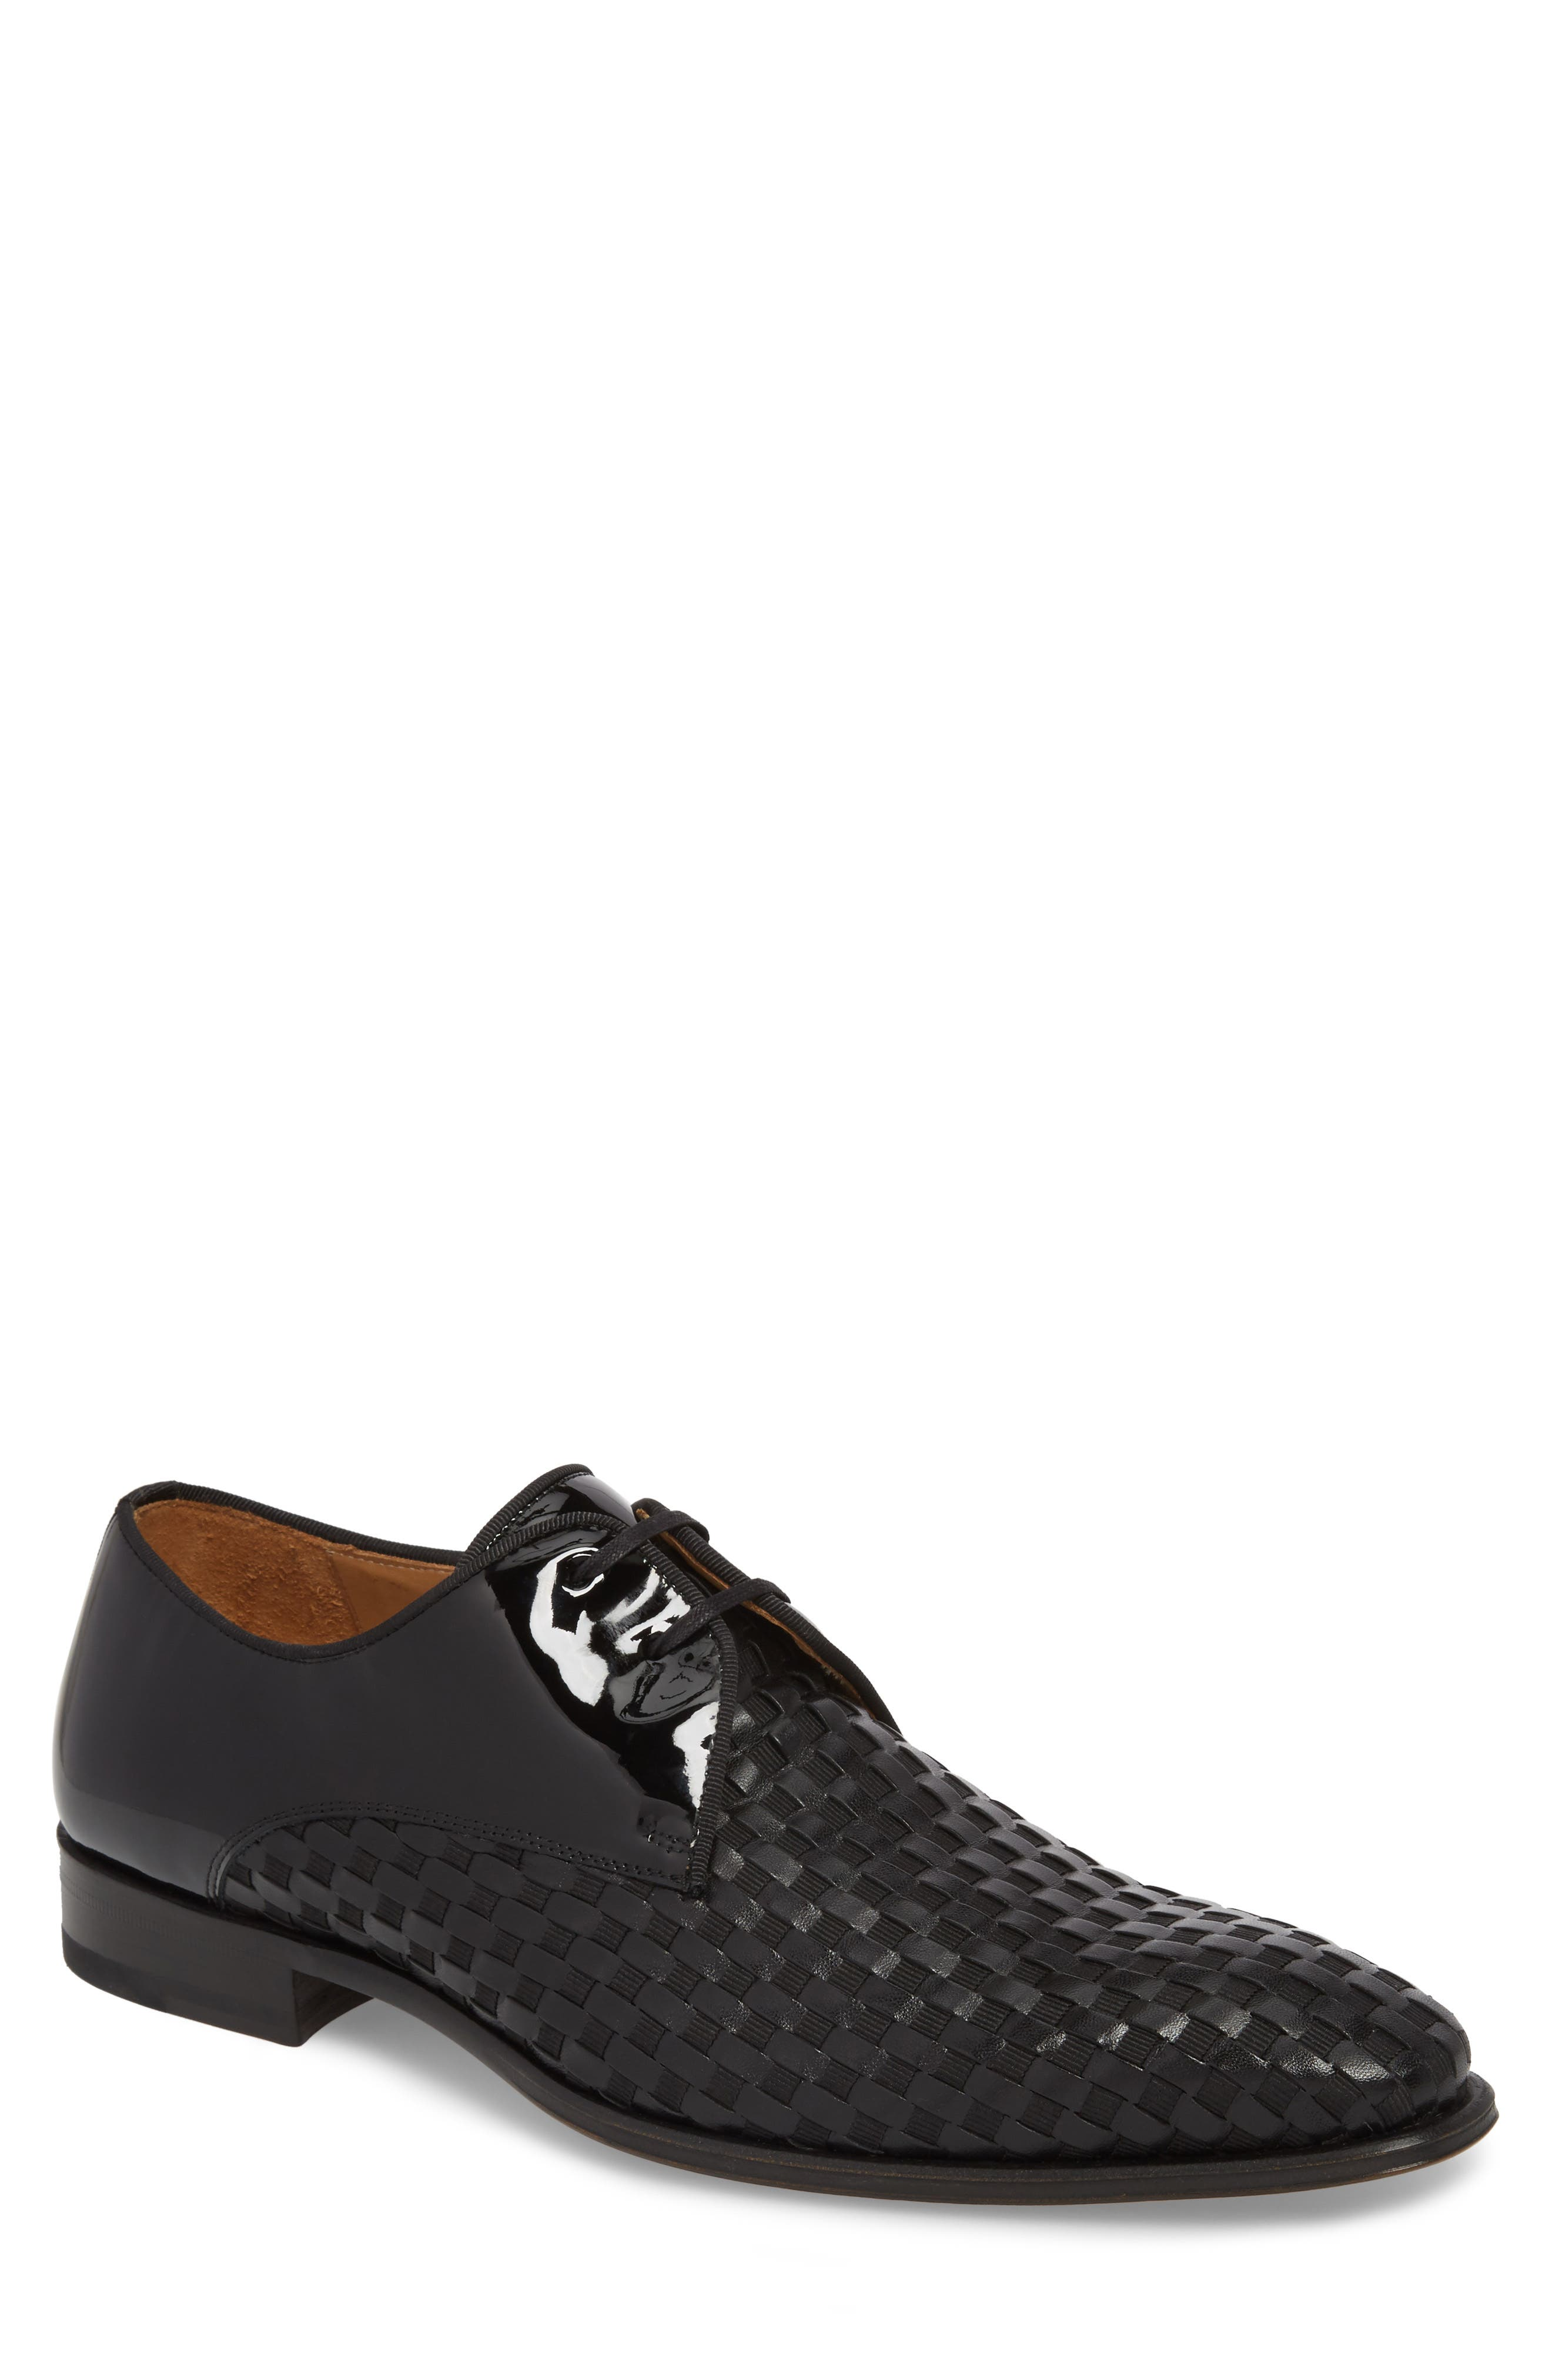 MEZLAN Sexto Plain Toe Derby in Black Leather